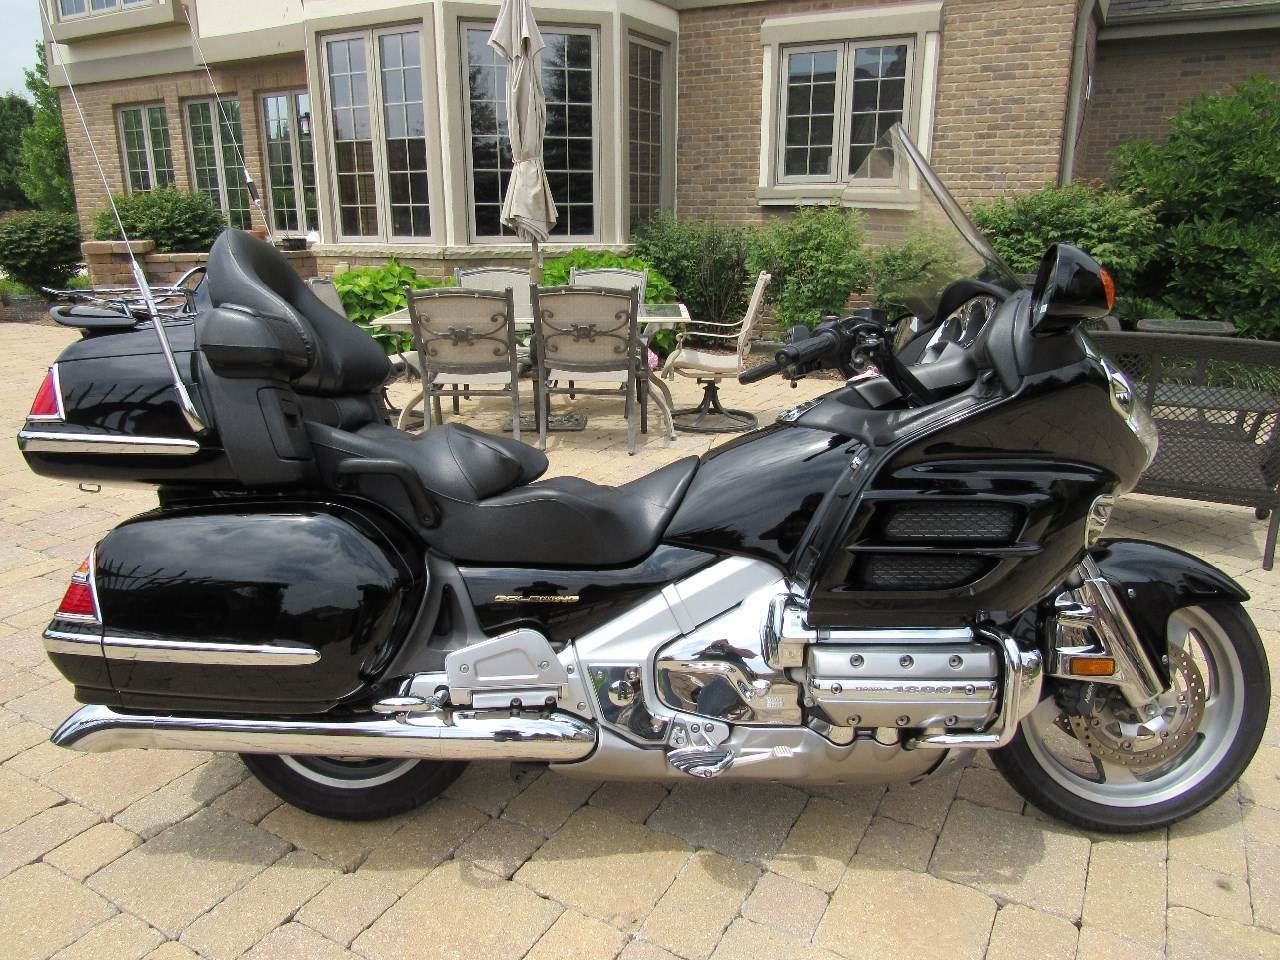 2003 Honda GOLD WING 1800 ABS, motorcycle listing